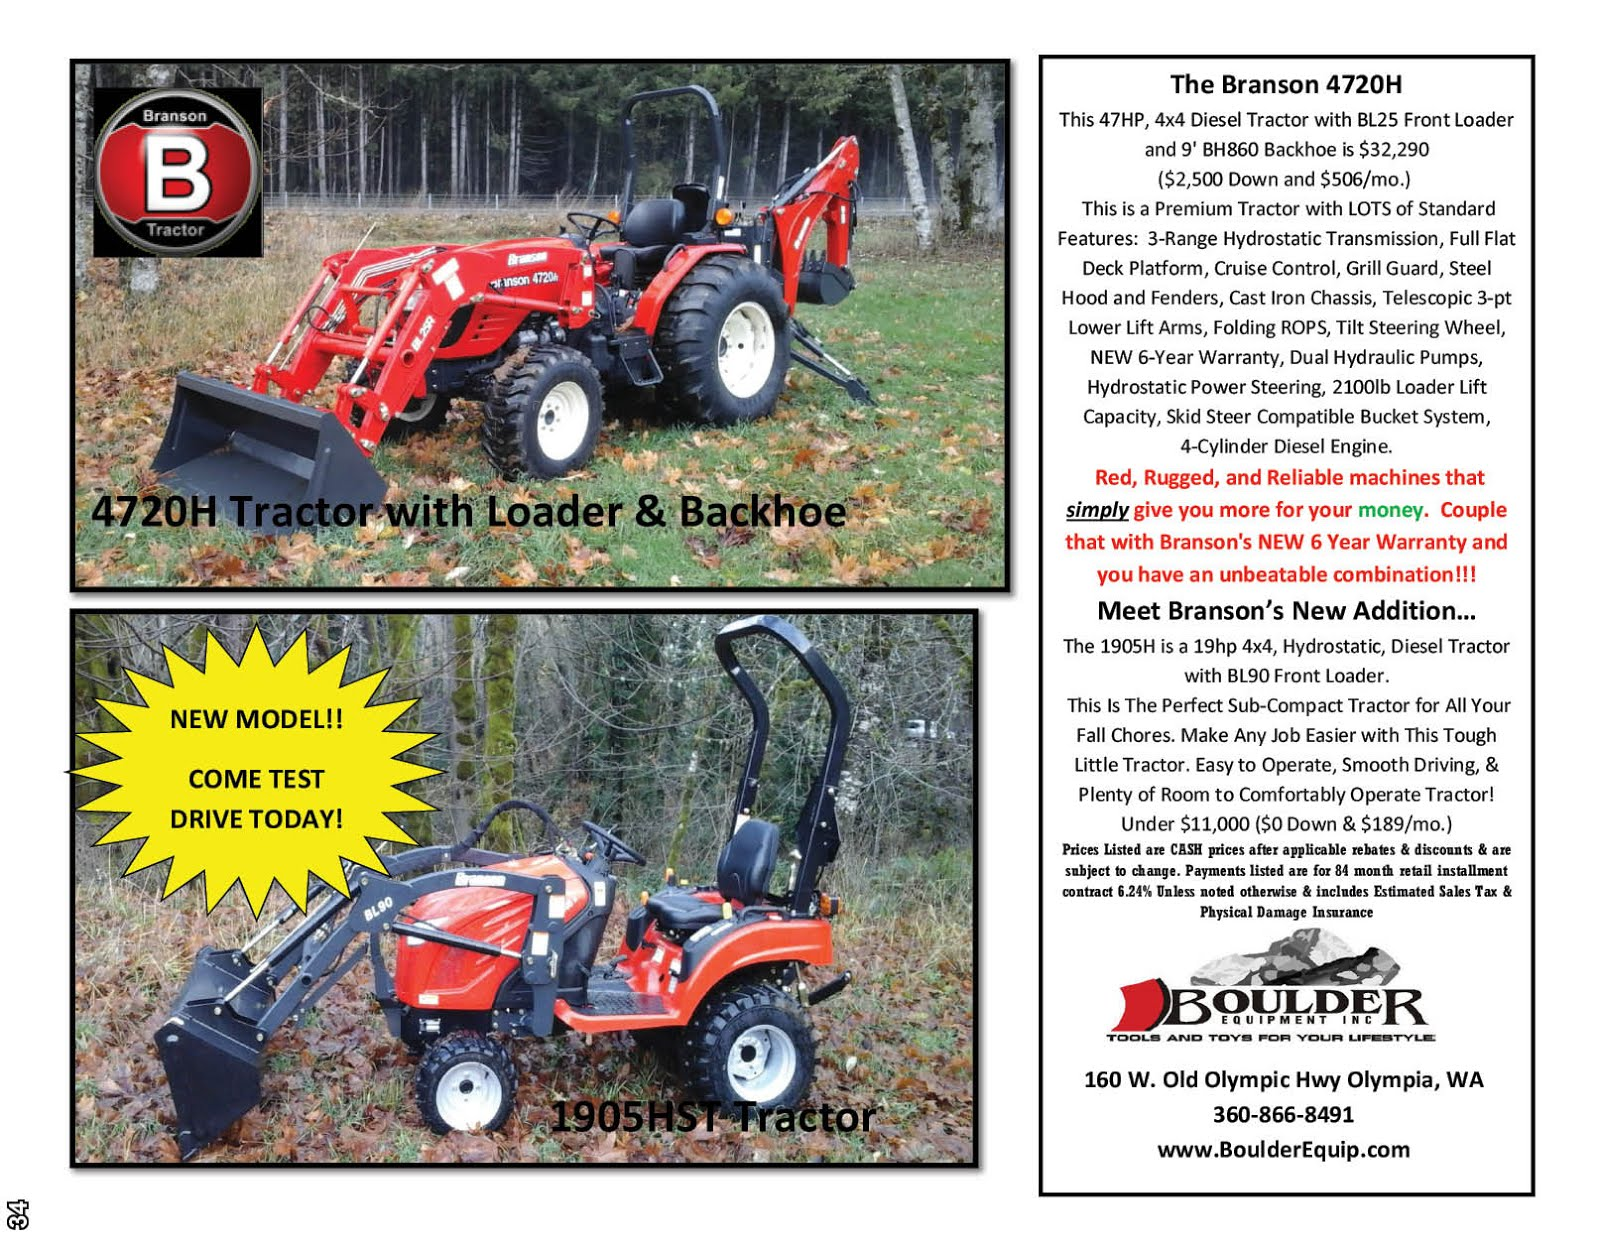 Boulder Equipment has Branson Tractors on Sale!!